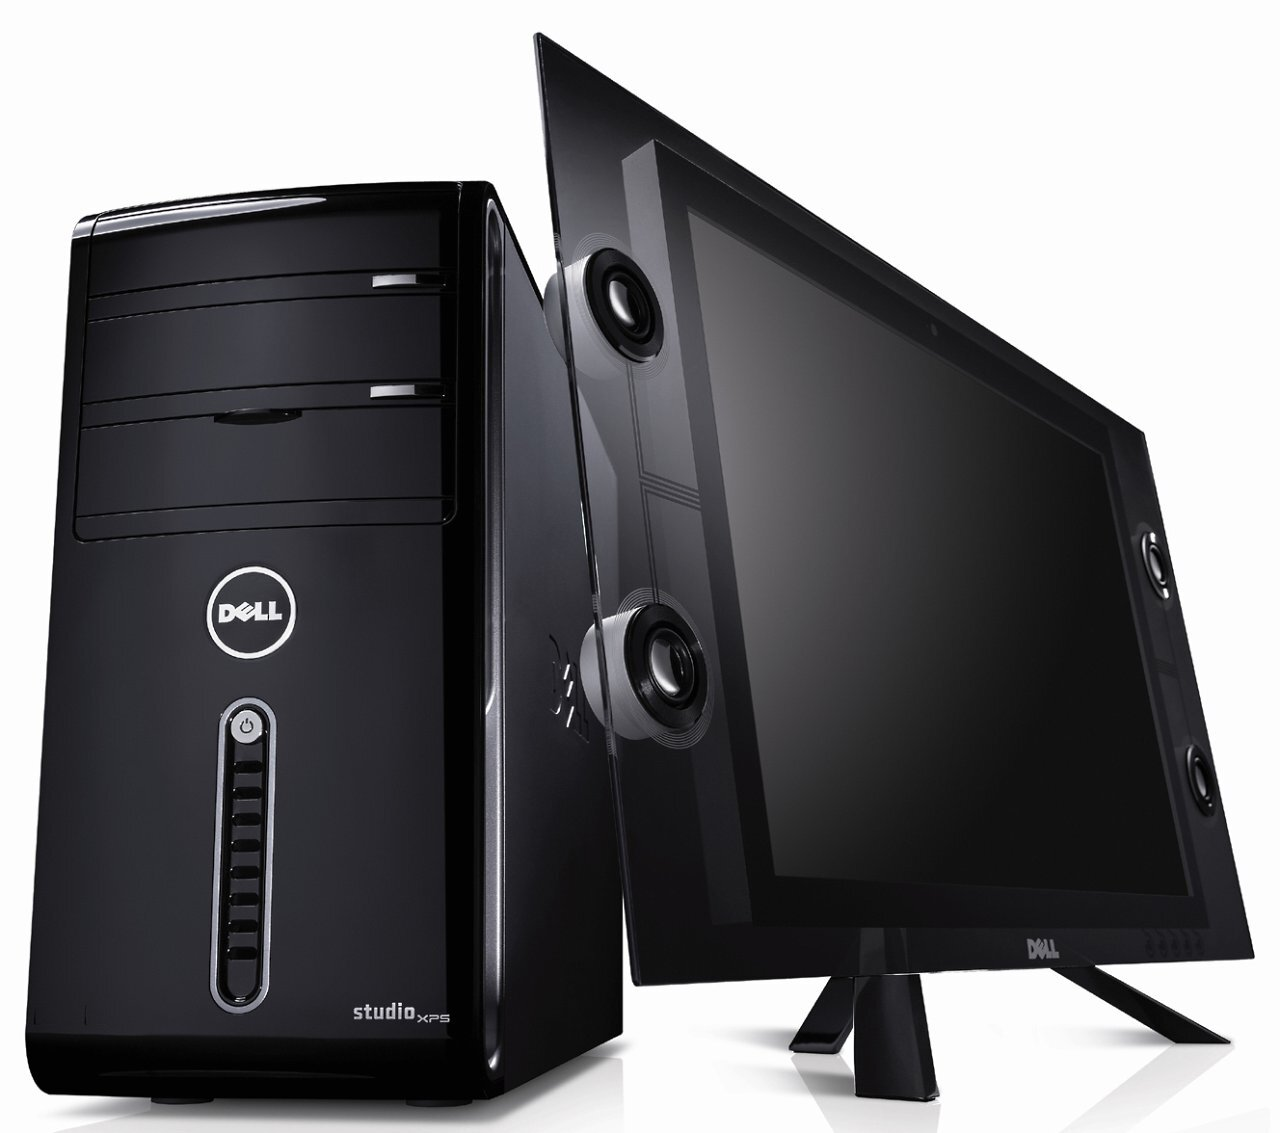 studio xps premi res machines dell dop es au core i7 d 39 intel. Black Bedroom Furniture Sets. Home Design Ideas